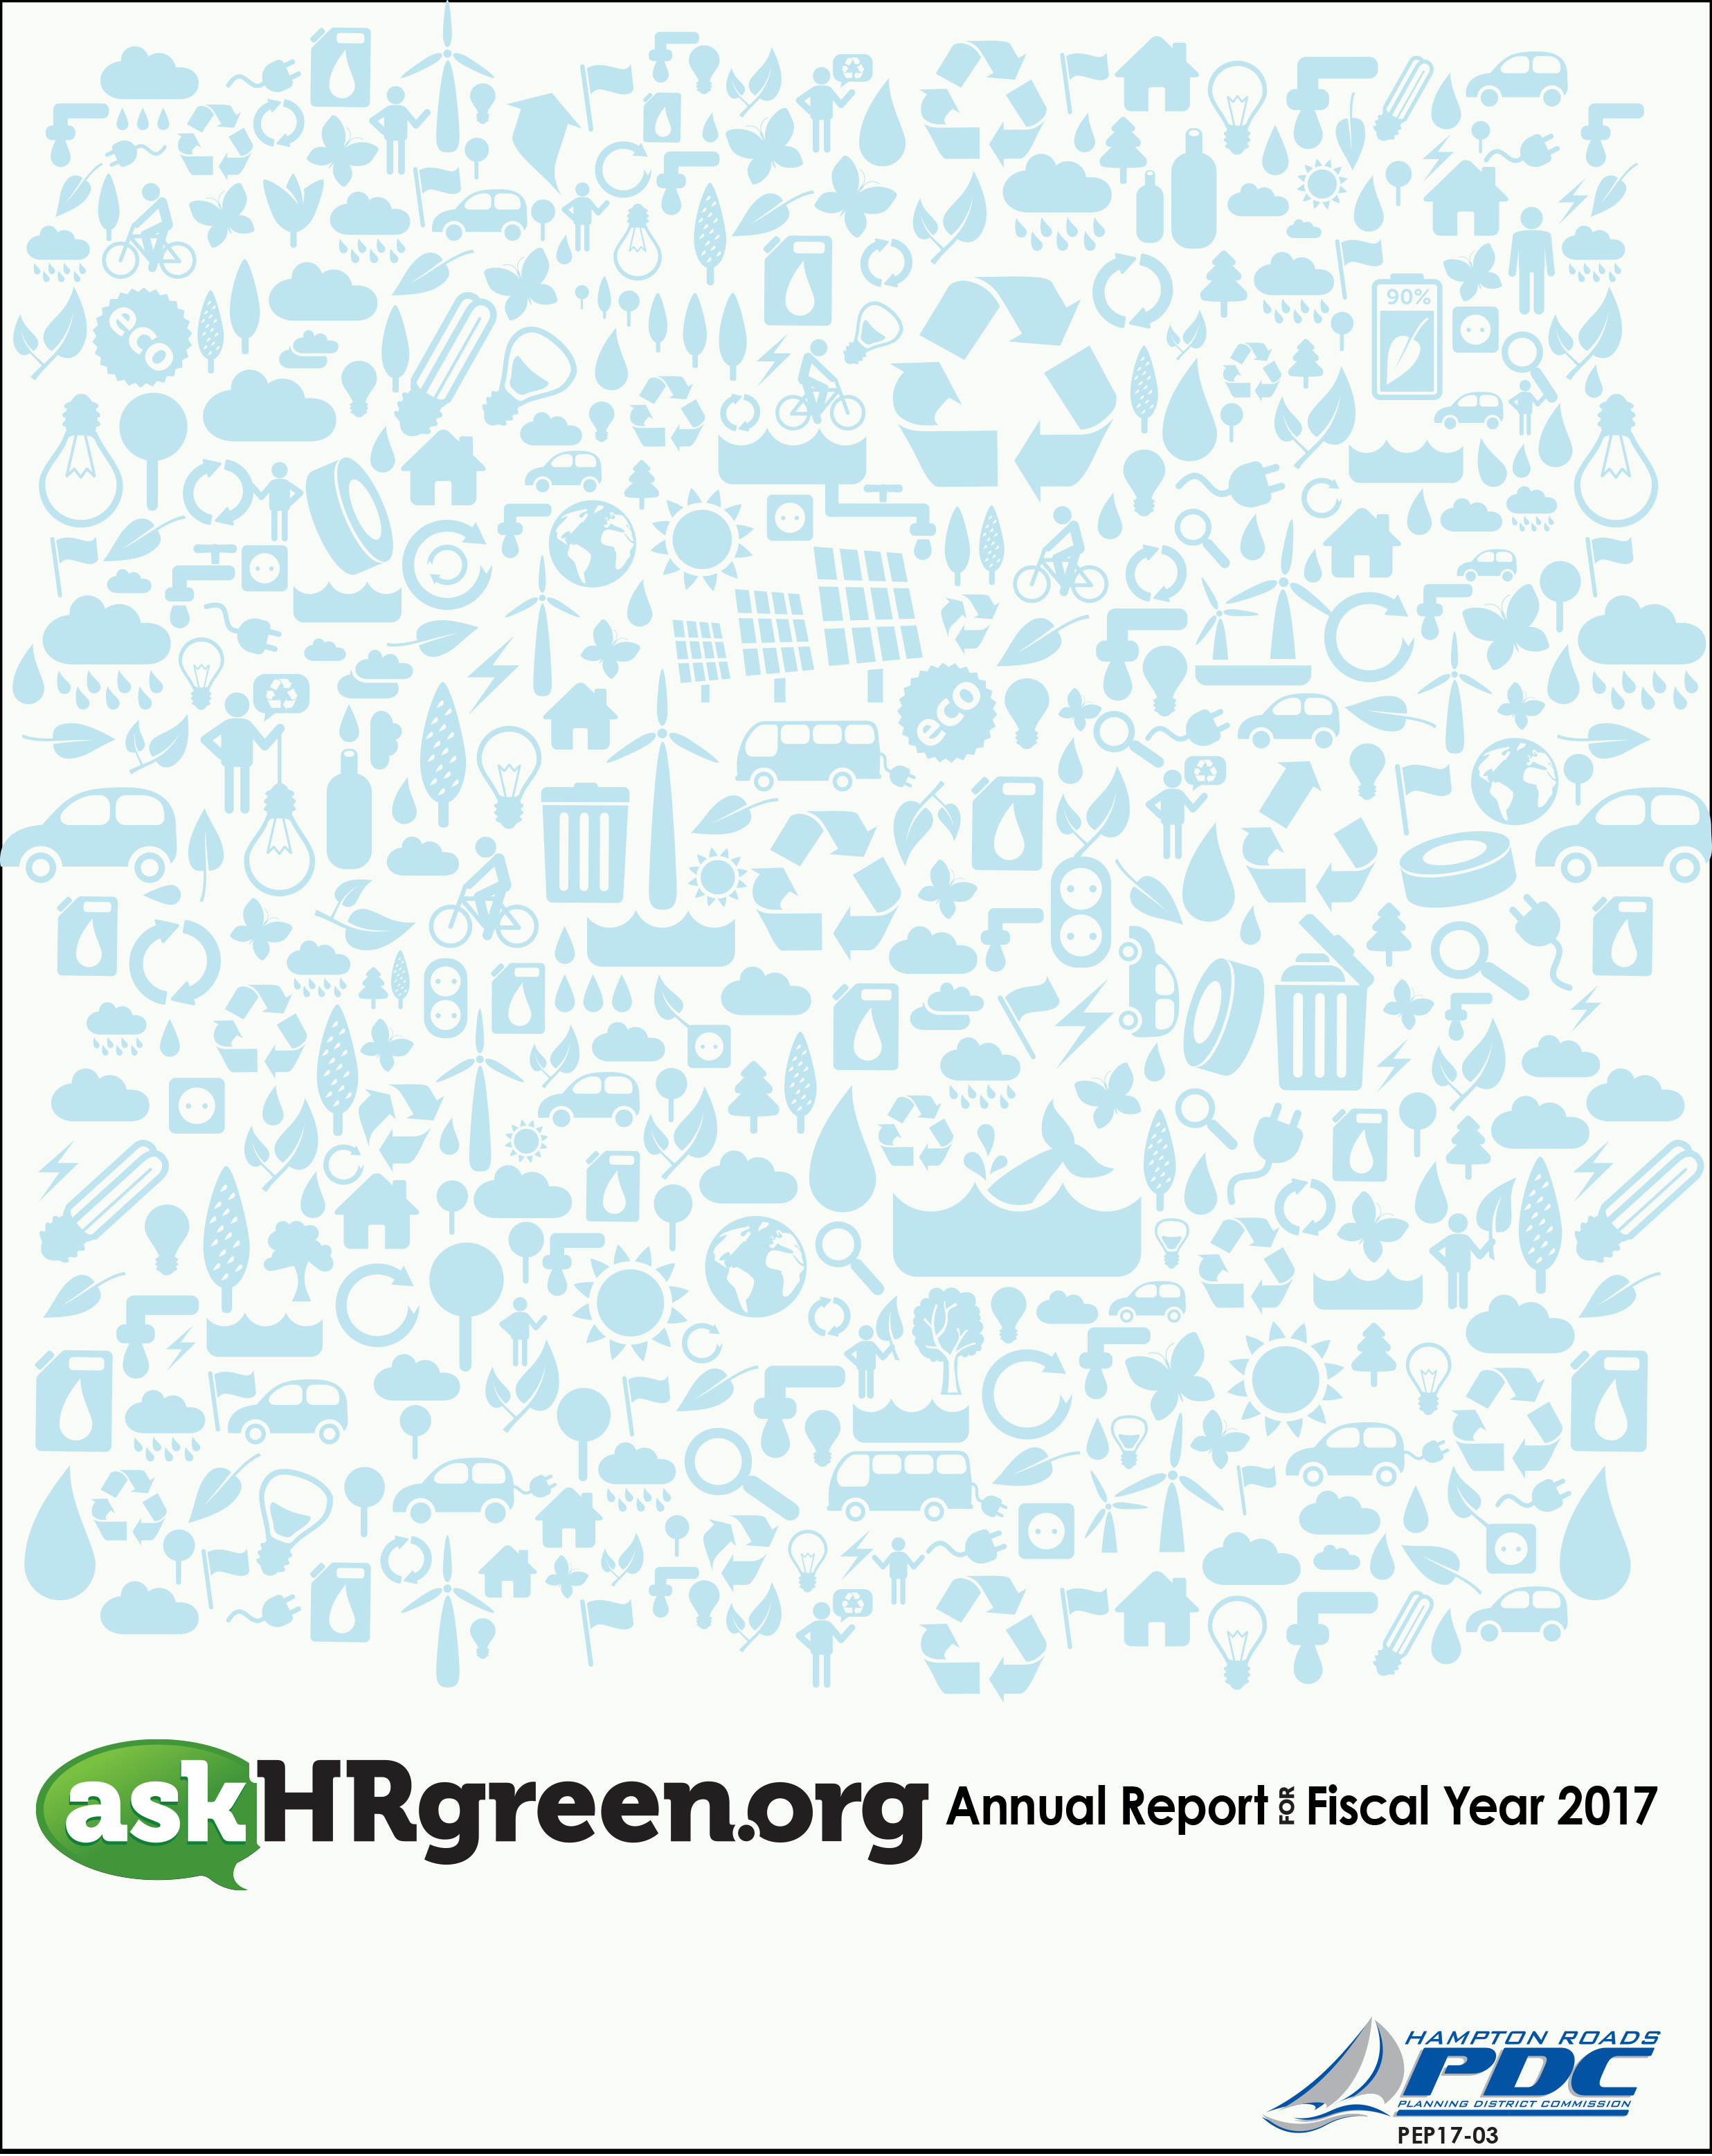 Cover of the askHRgreen.org FY 2016-2017 Annual Report.